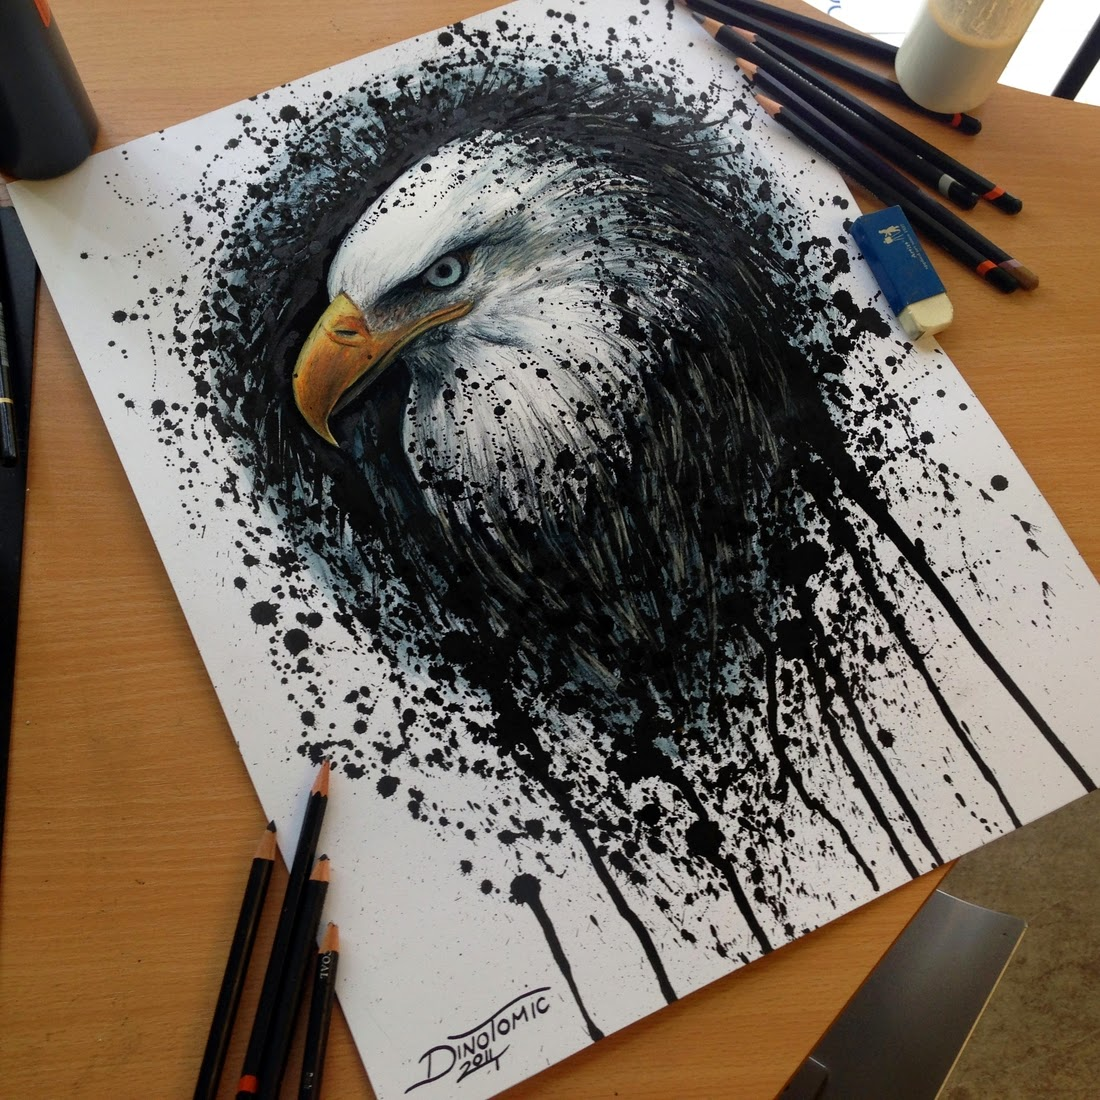 12-Eagle-Splatter-Dino-Tomic-AtomiccircuS-Mastering-Art-in-Eclectic-Drawings-www-designstack-co